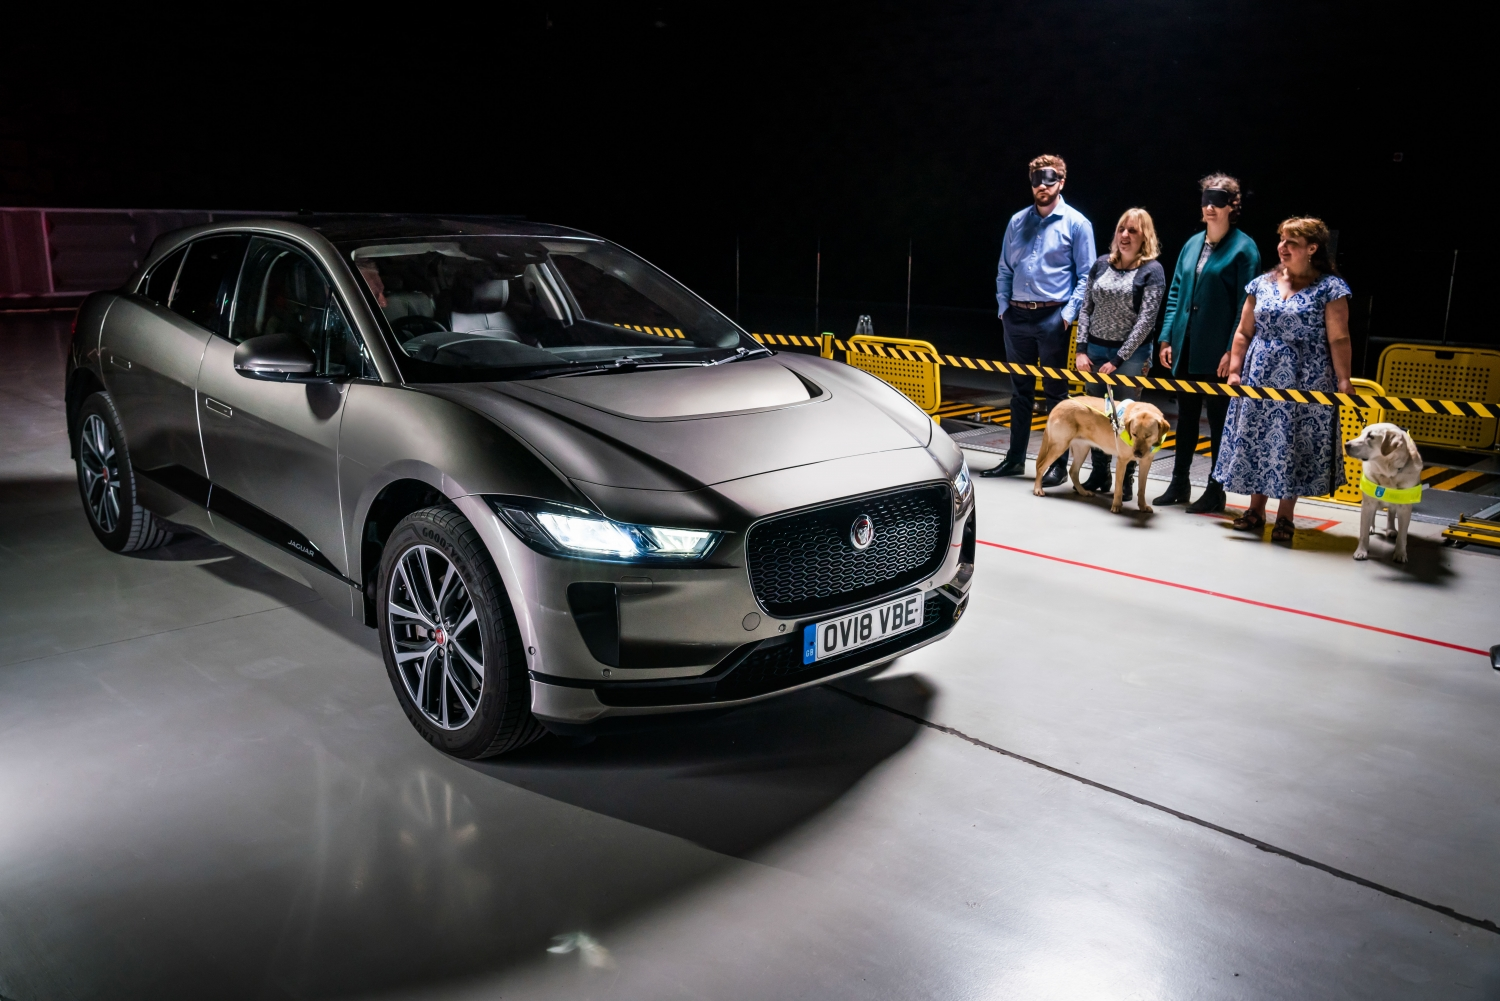 SOUND OF JAGUAR I-PACE PROTECTS ROAD USERS | Jaguar homepage